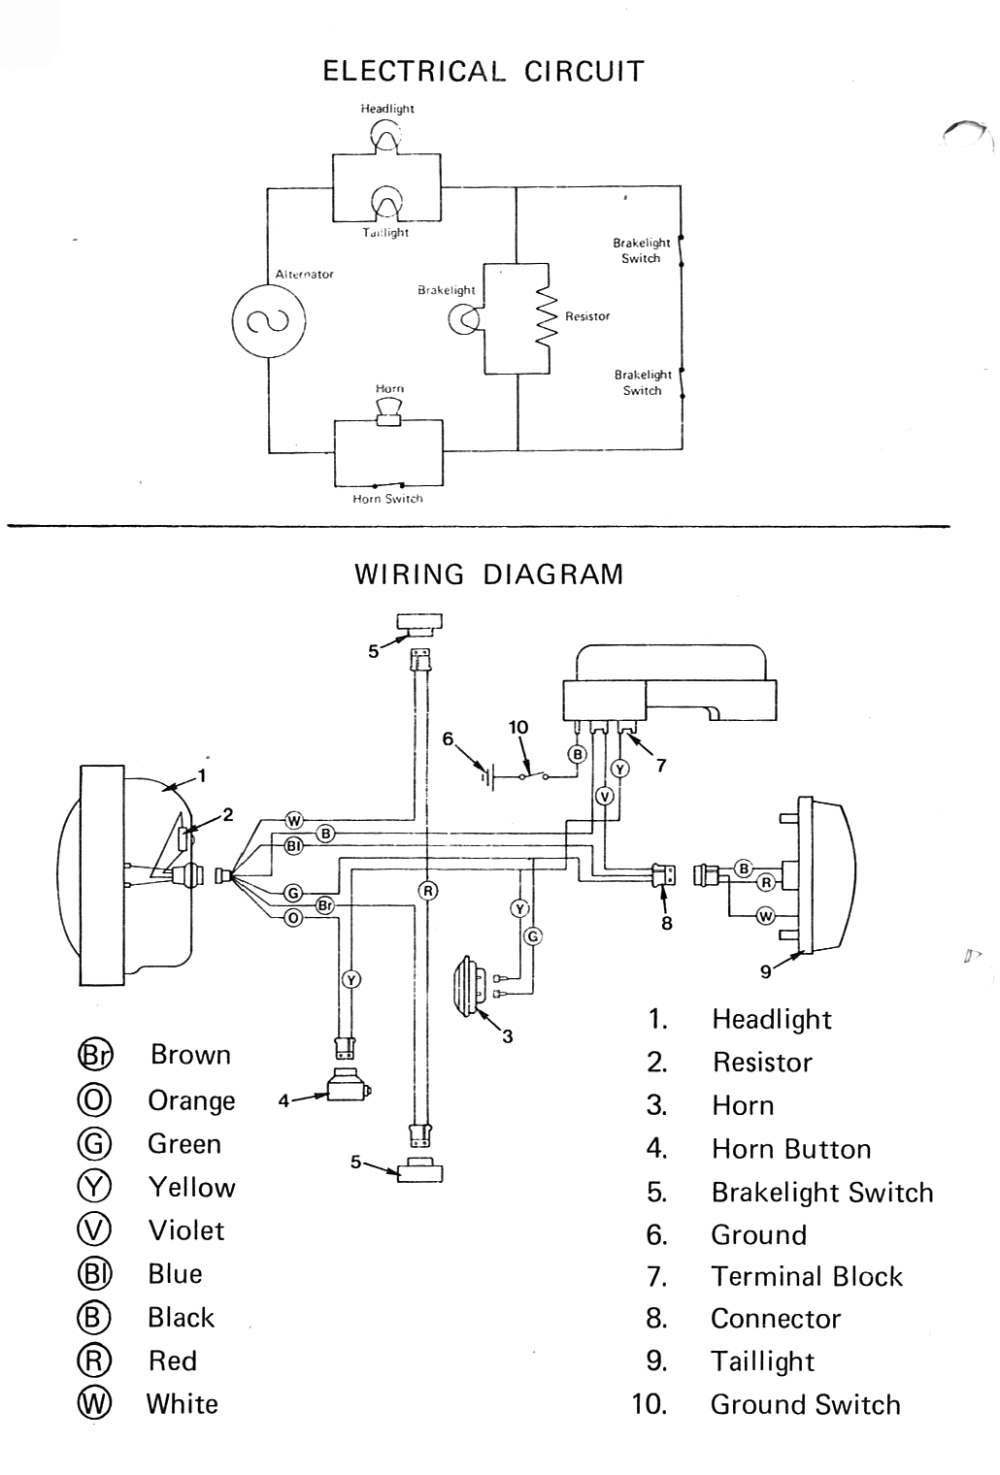 medium resolution of 1984 honda moped wiring diagram wiring diagram centre 1984 honda ct110 wiring diagram 1984 honda moped